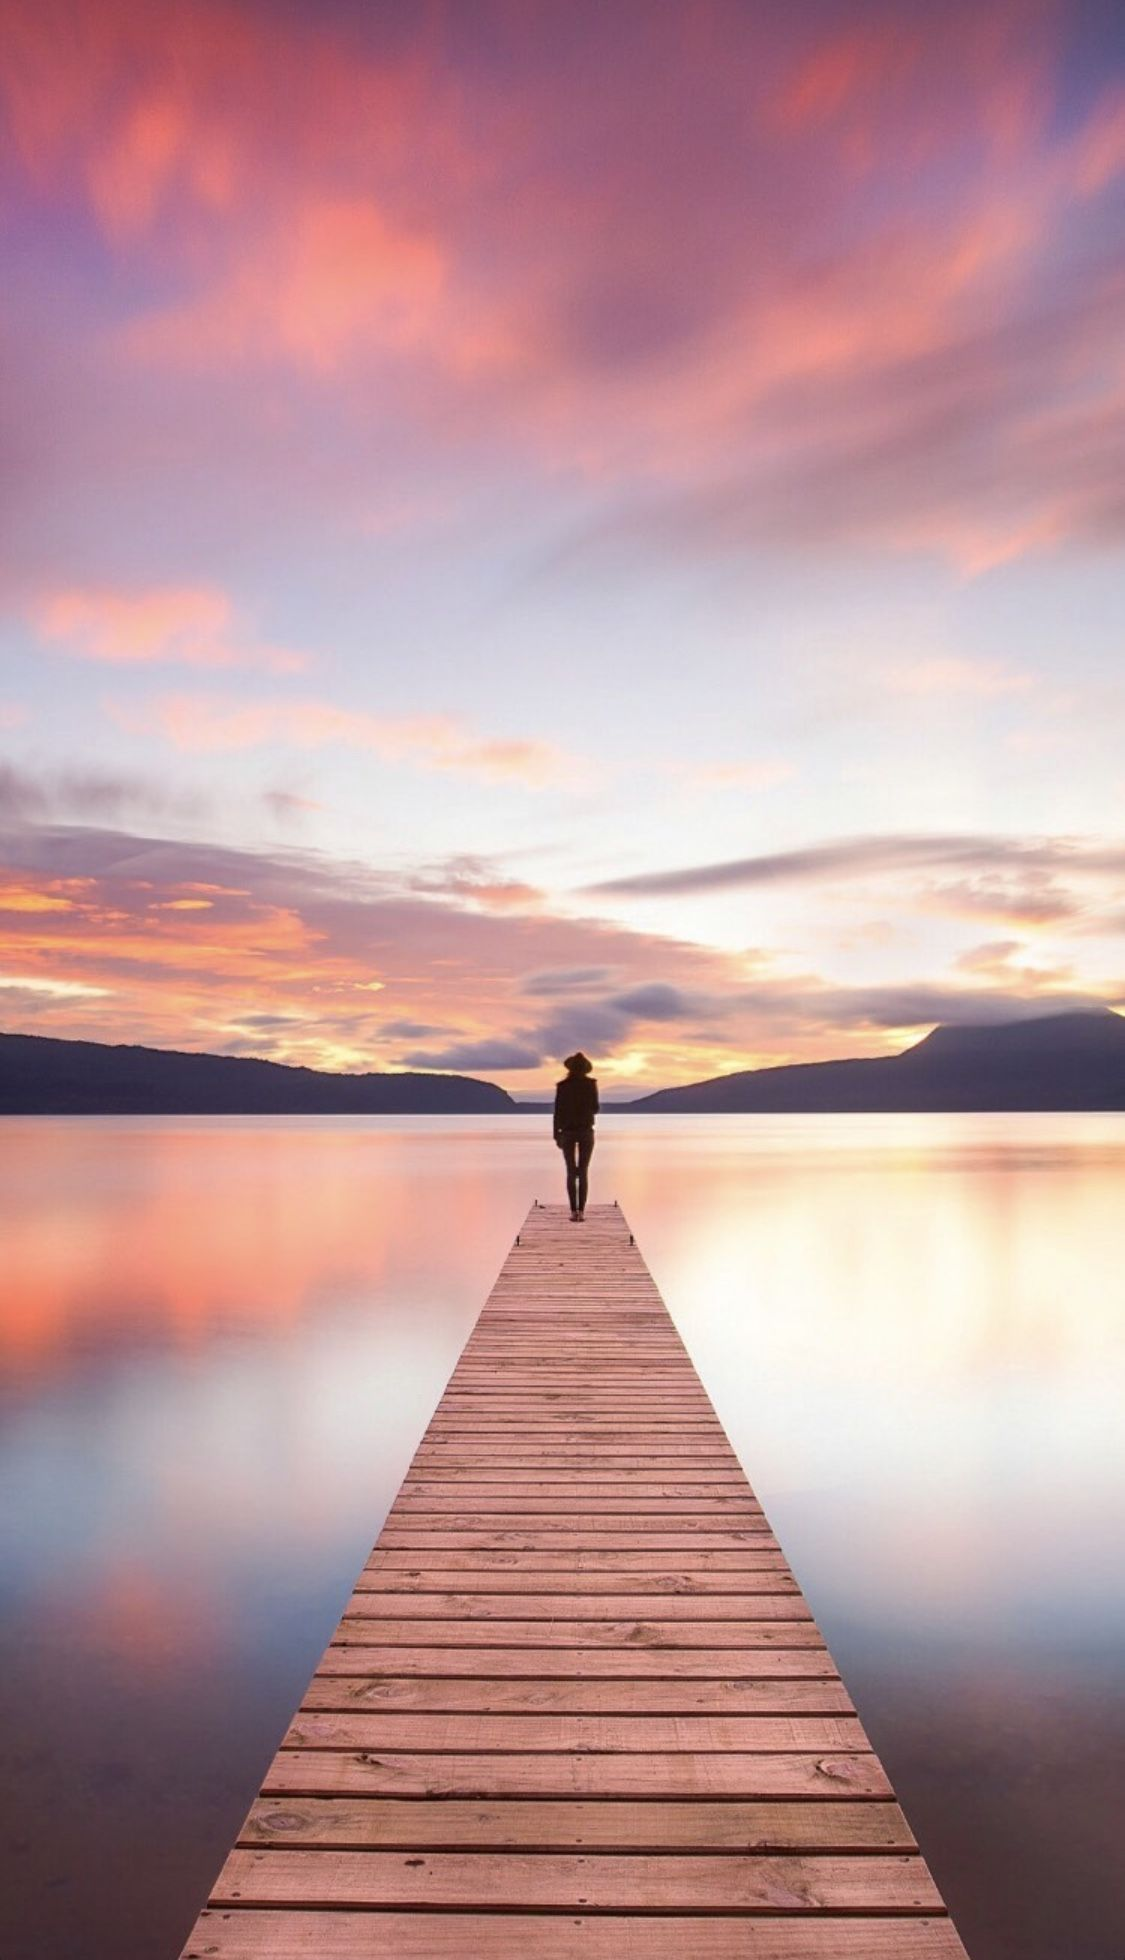 Pin by emma aileen on iPhone backgrounds in 2020 Lake